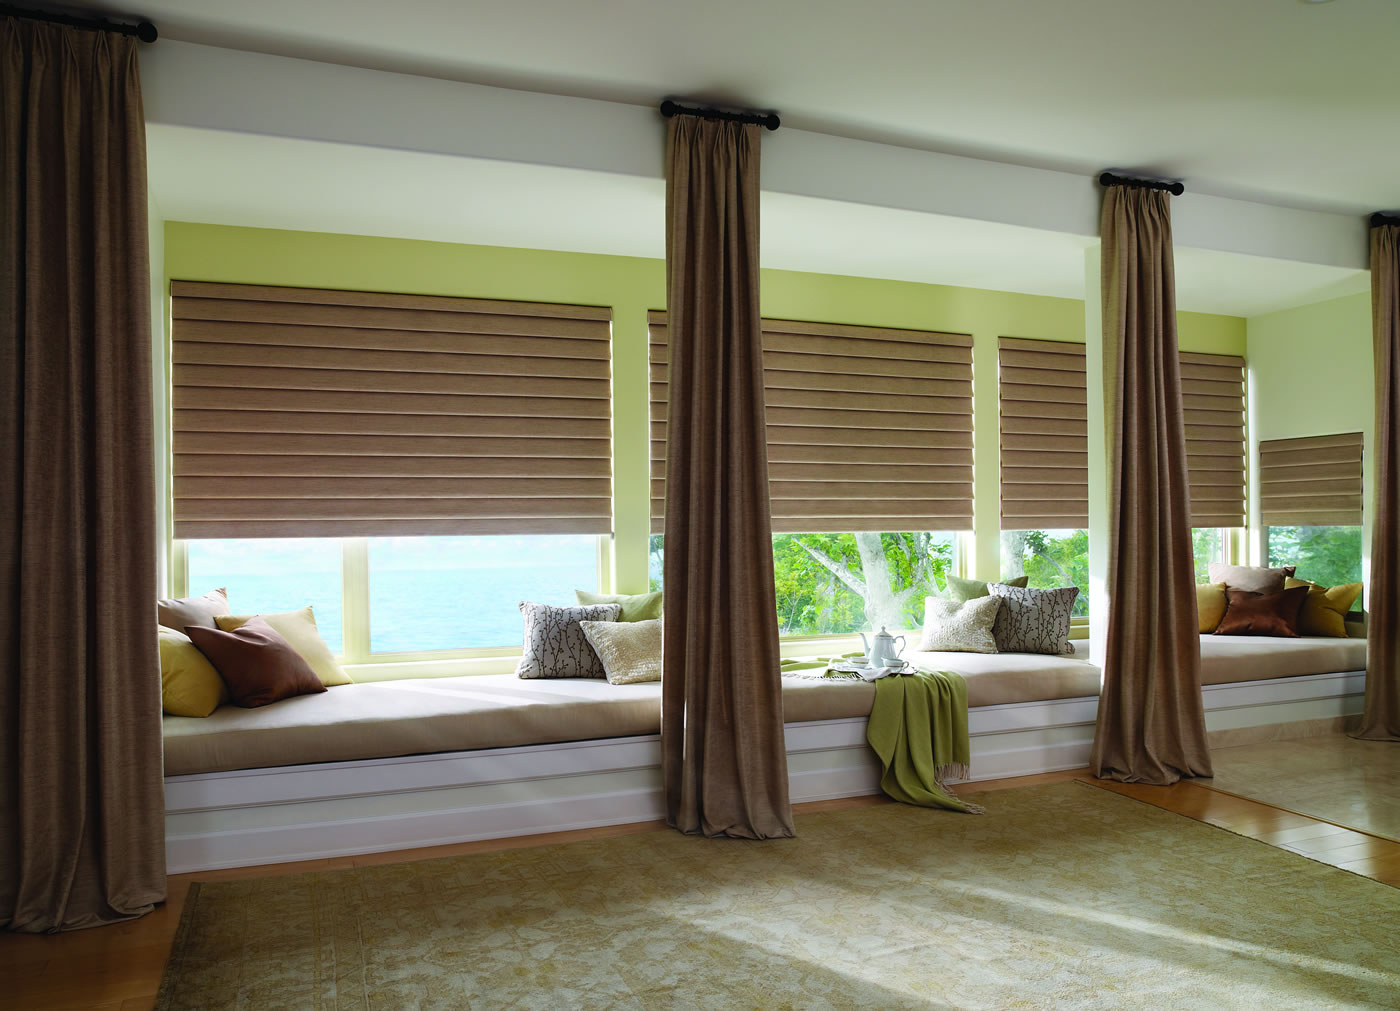 Latest window blinds images. vertical blinds gallery. bedroo.